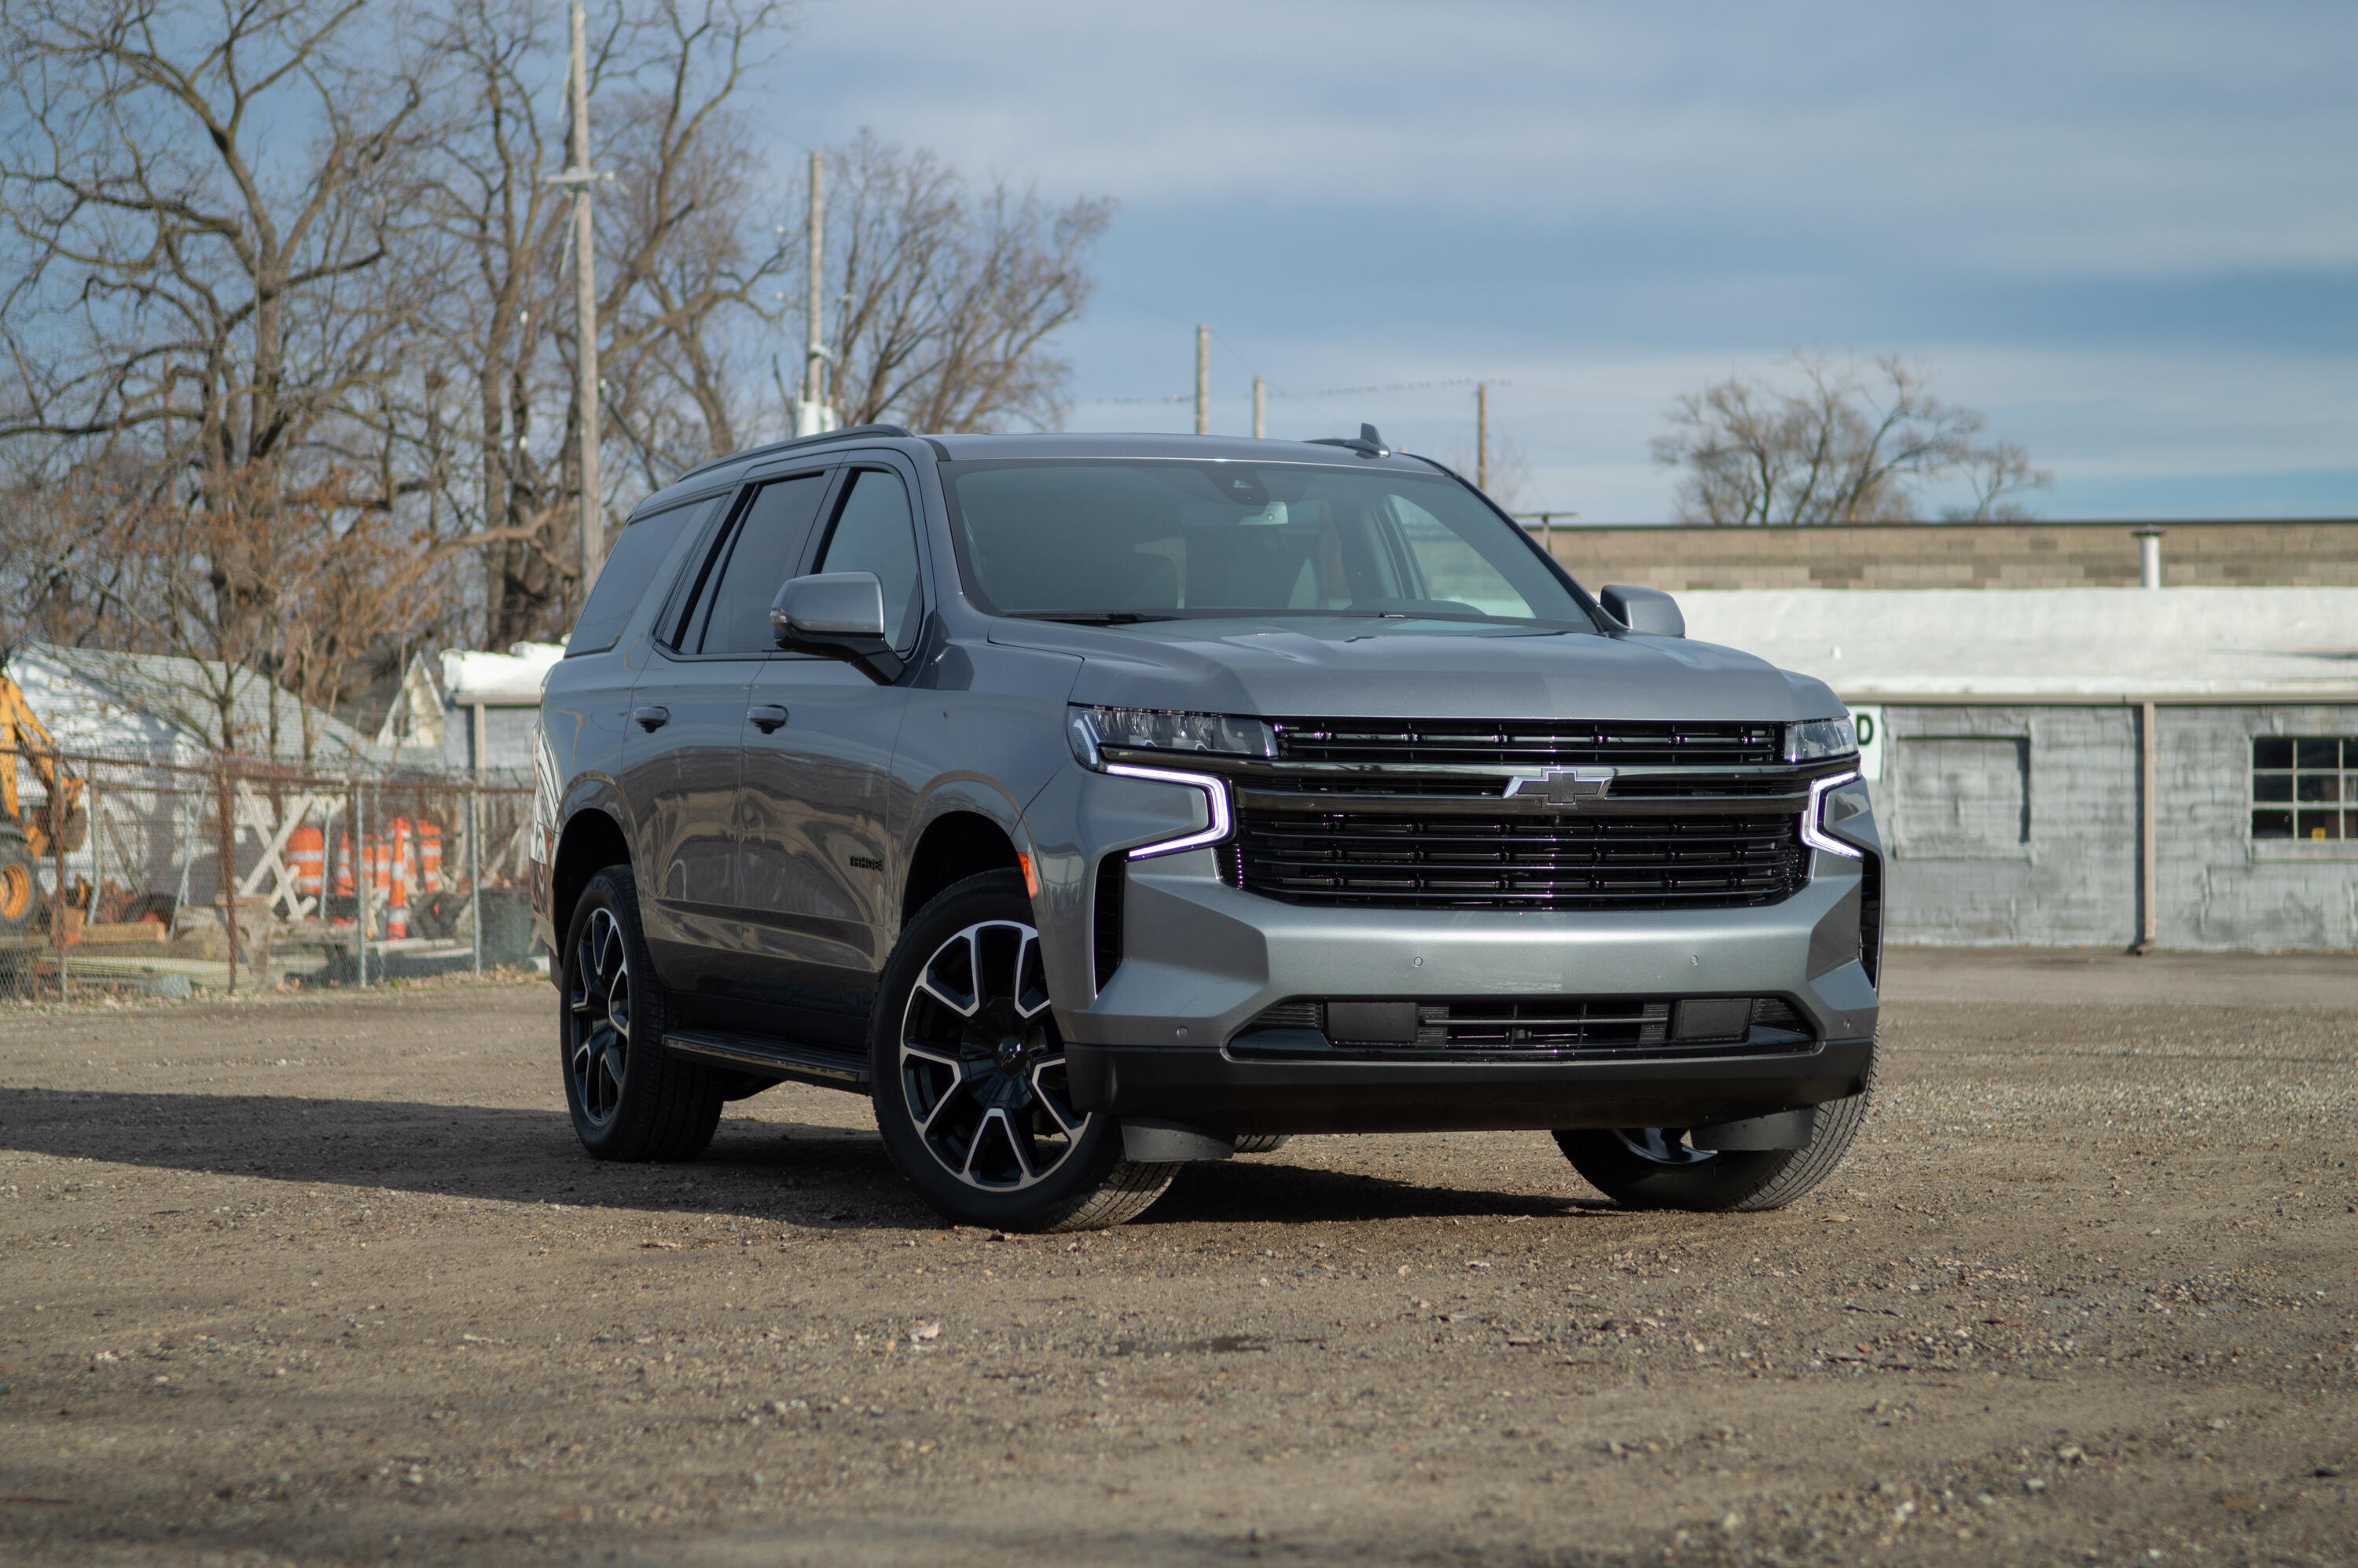 GM's large SUVs recalled for potential seat belt defect - Roadshow